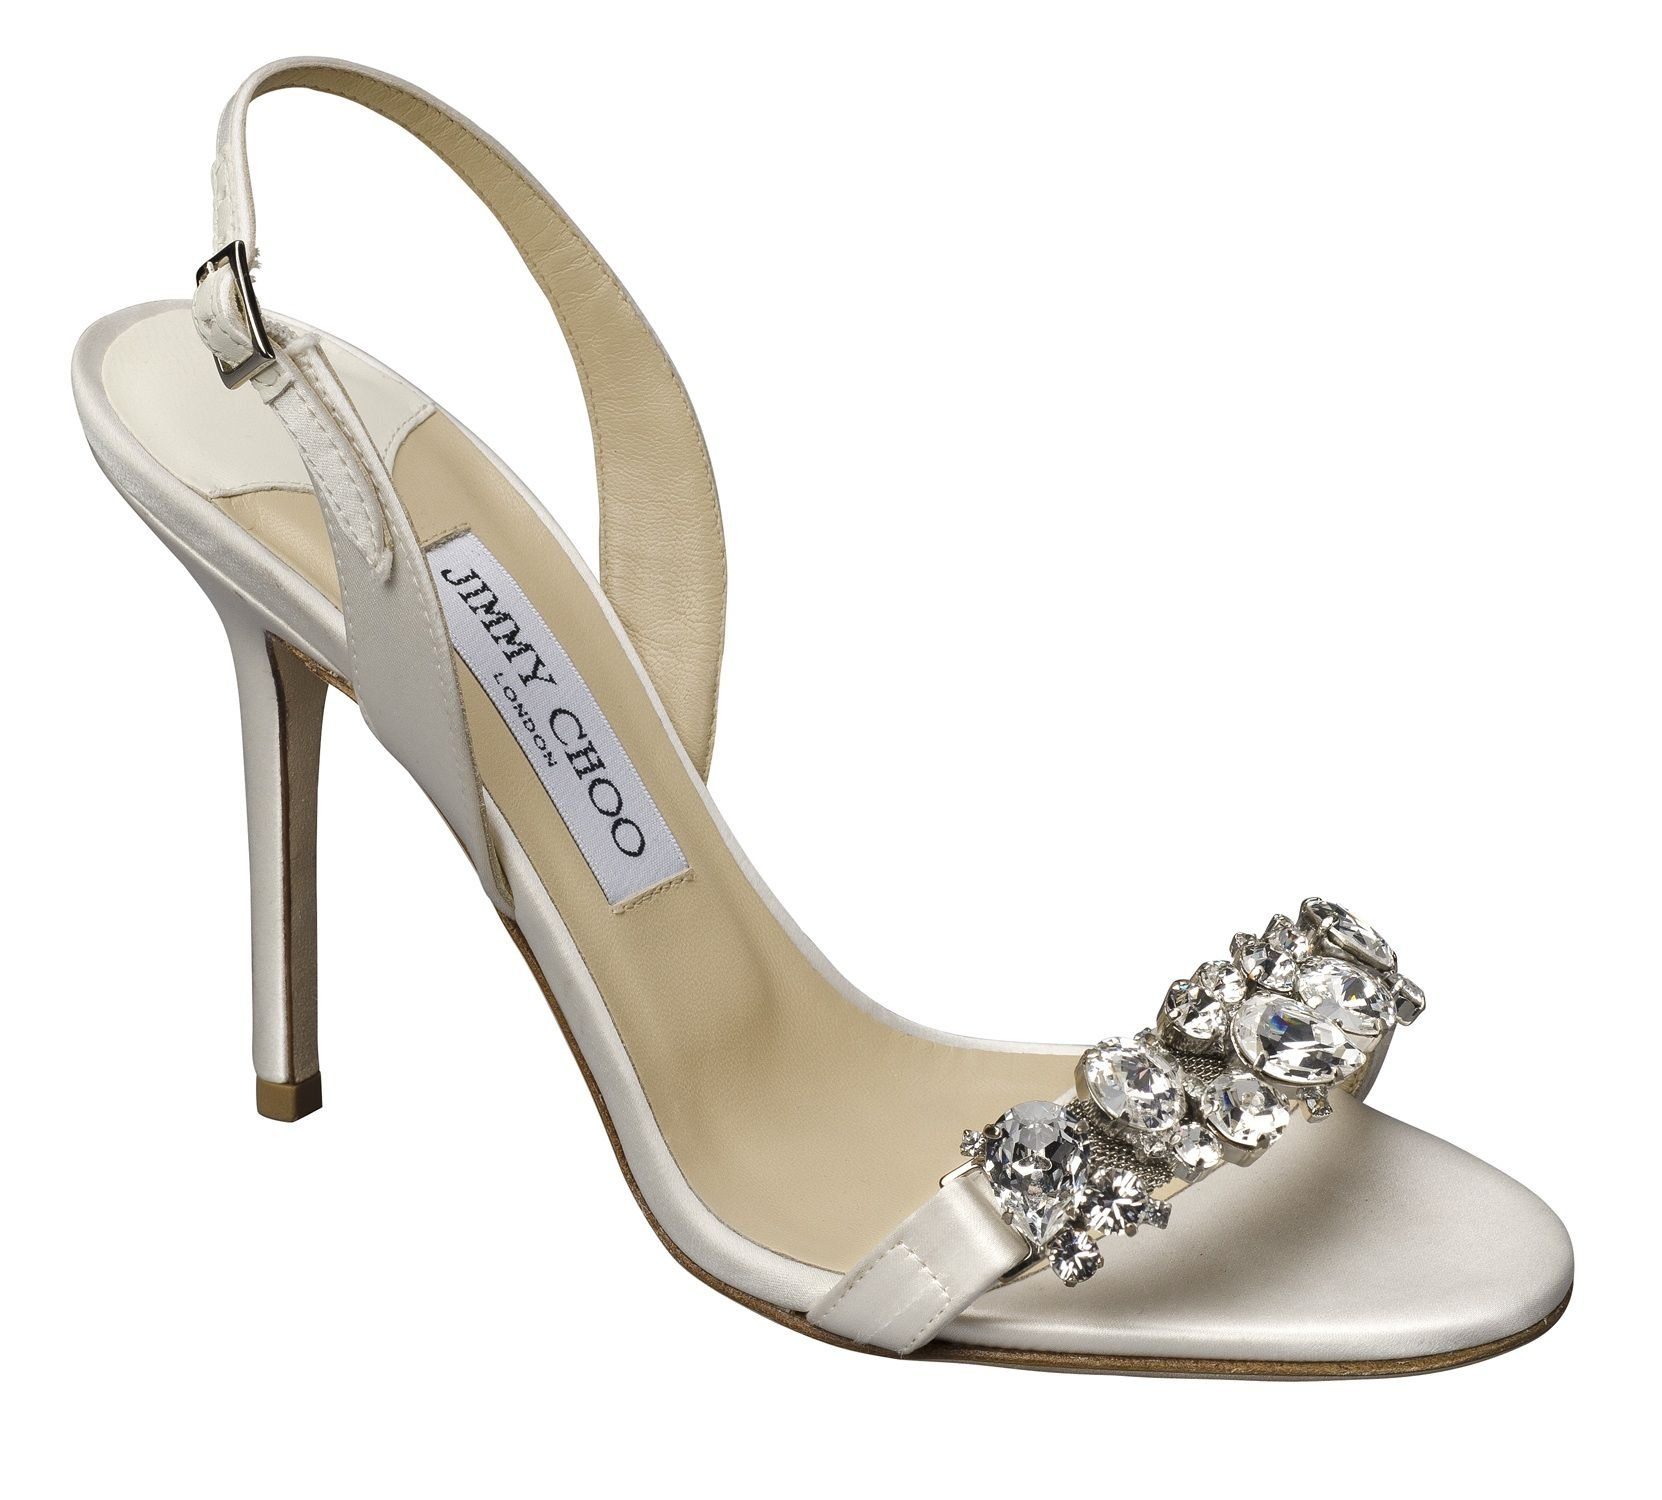 Best Brides Shoes 2014 Brought To You By Myfauxdiamond